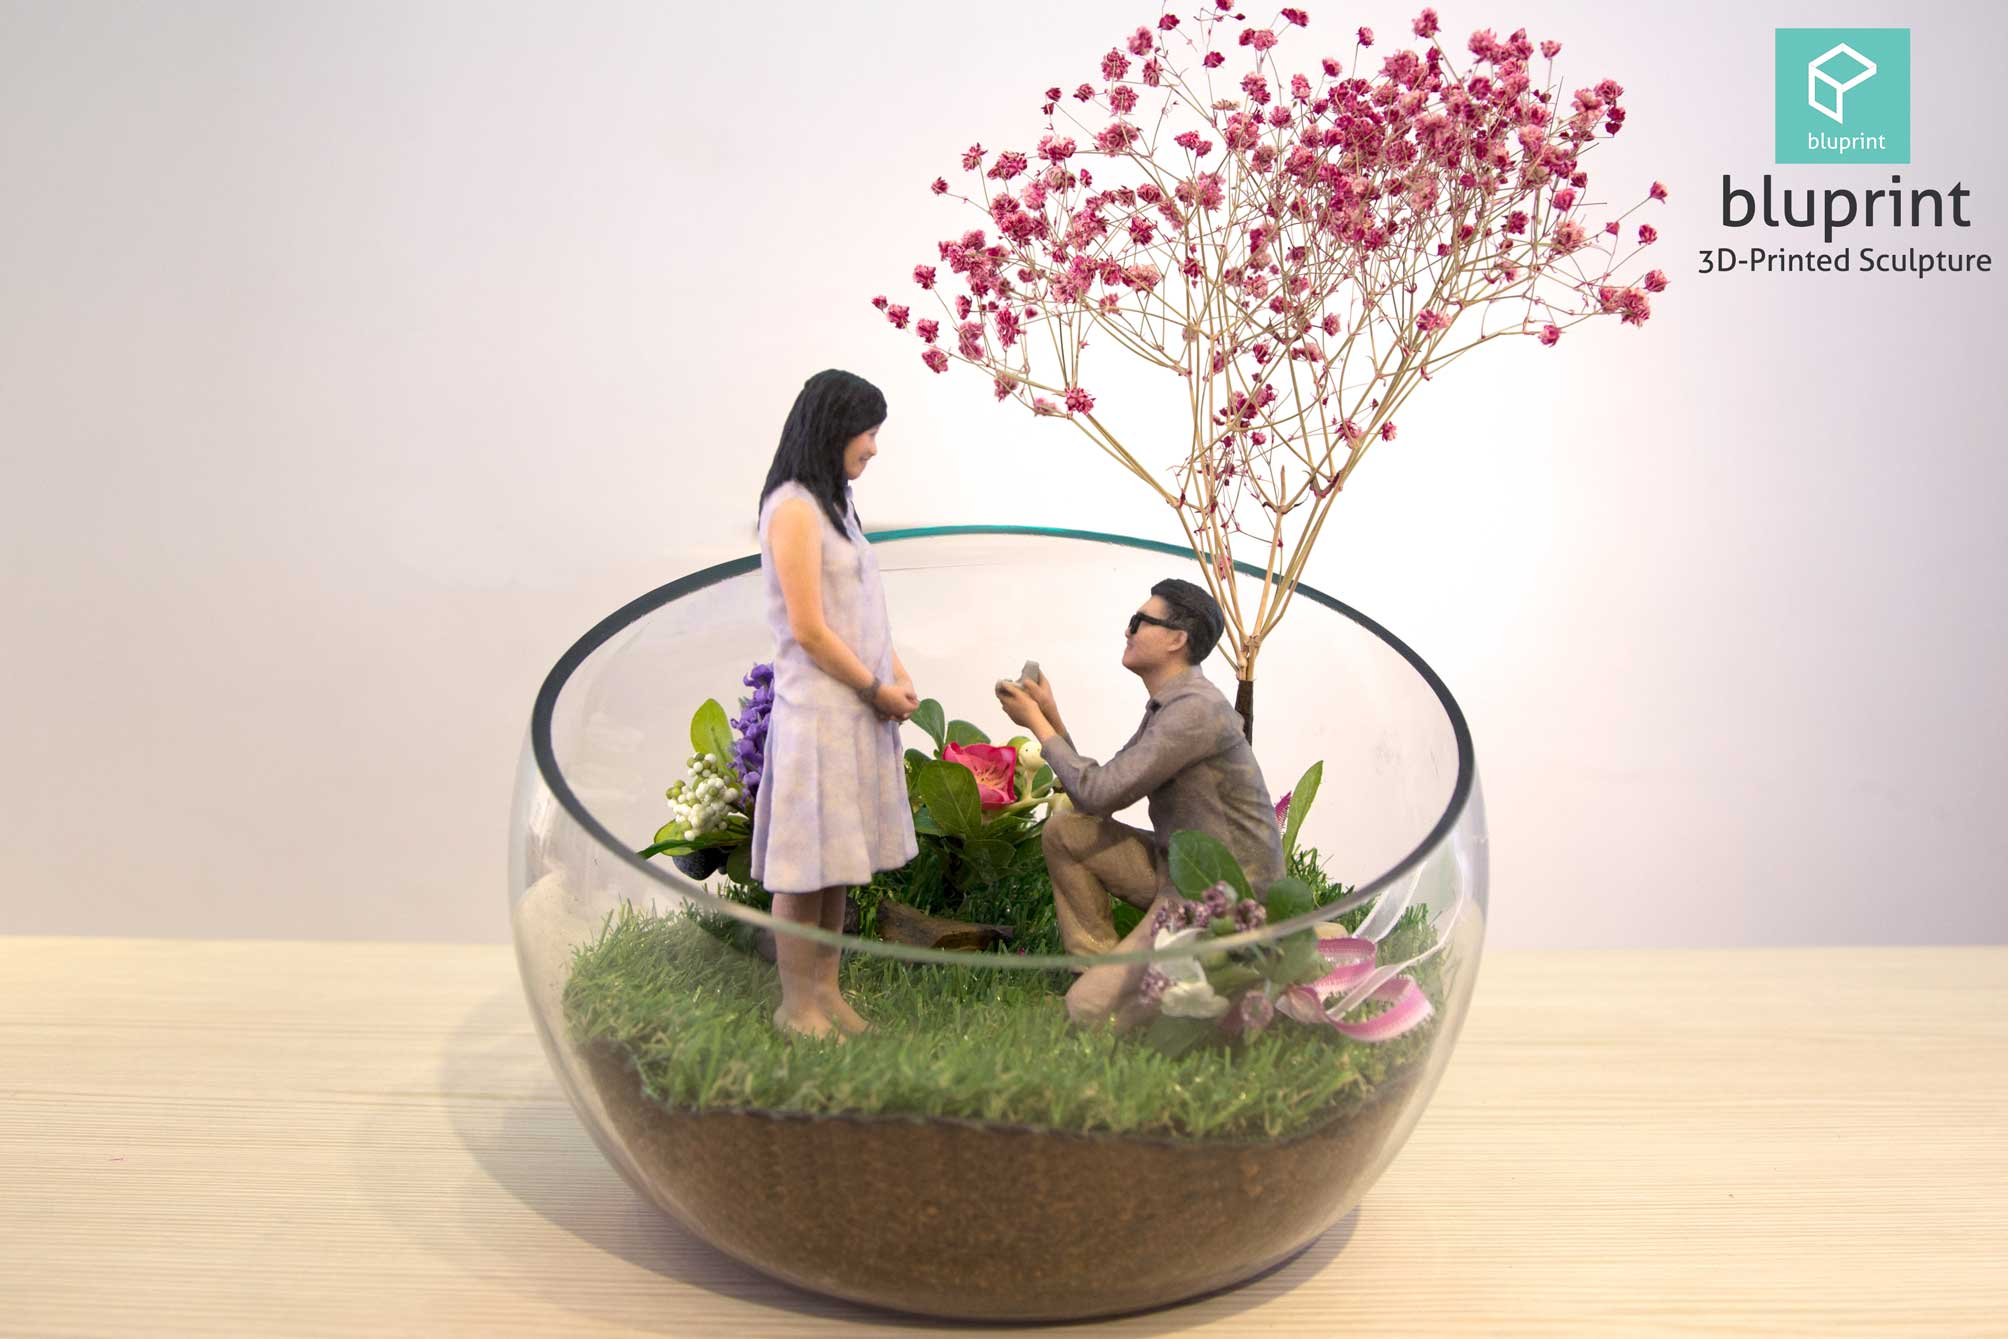 Bluprint 3D Figure Sculpture Hong Kong Couple Proposal Terrarium